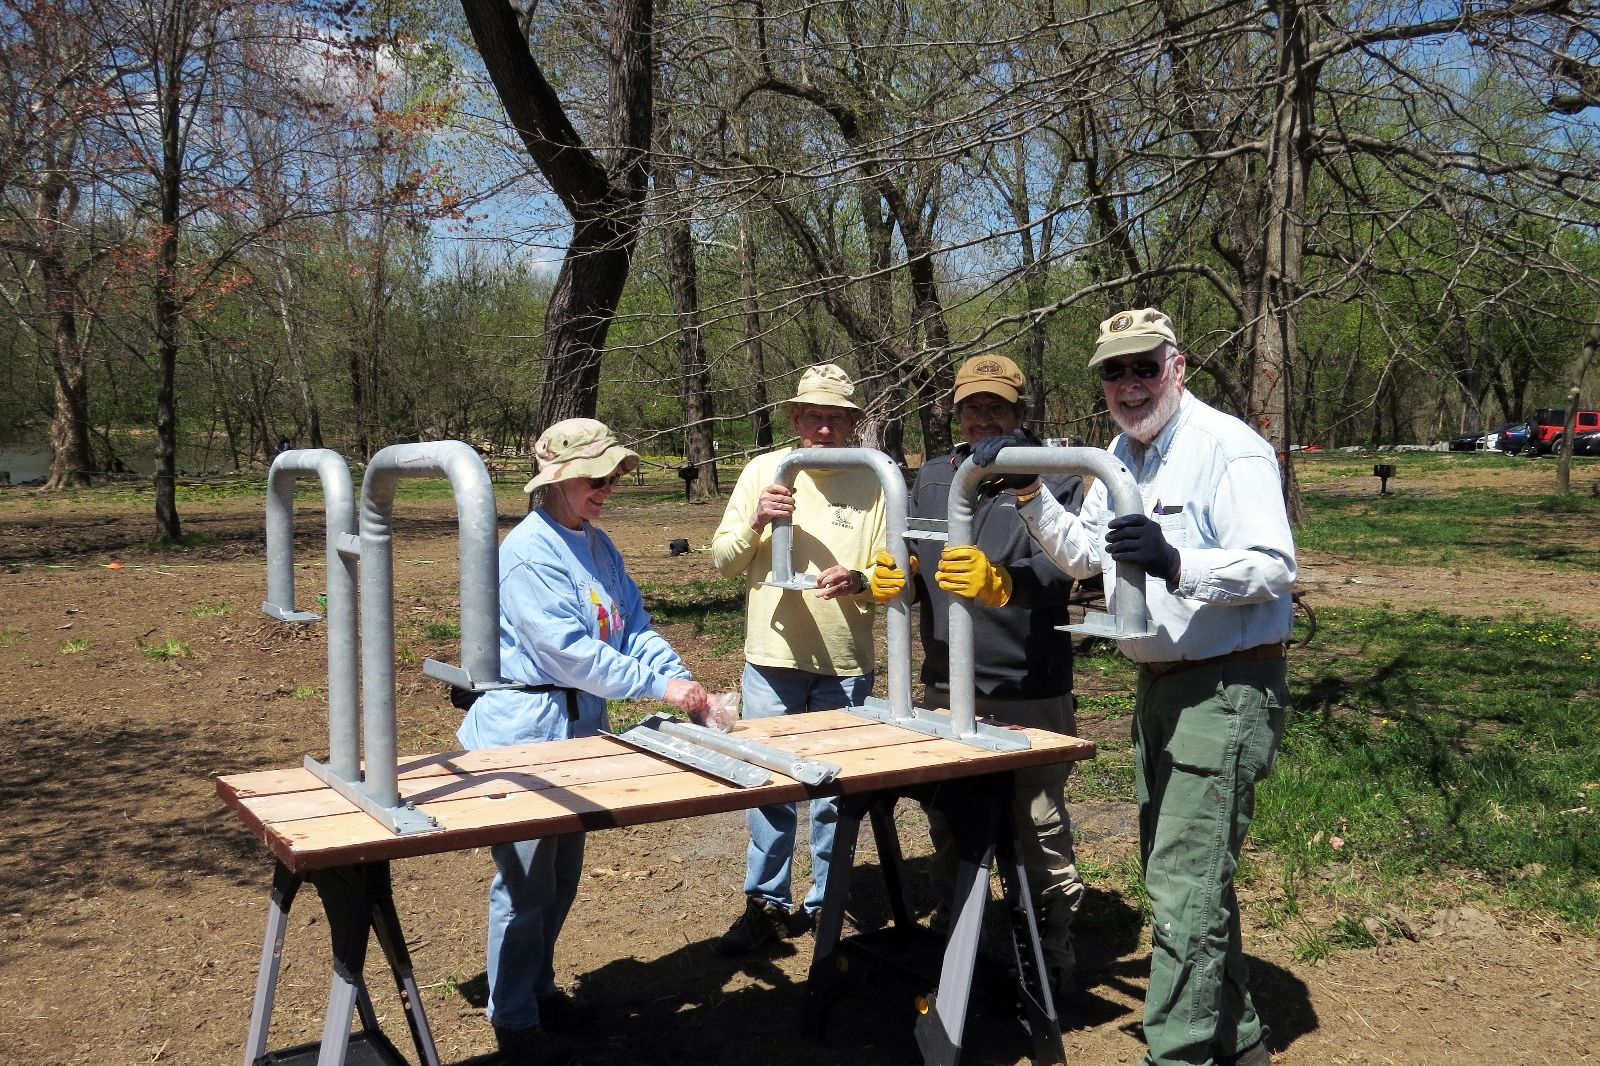 Volunteers assemble picnic table